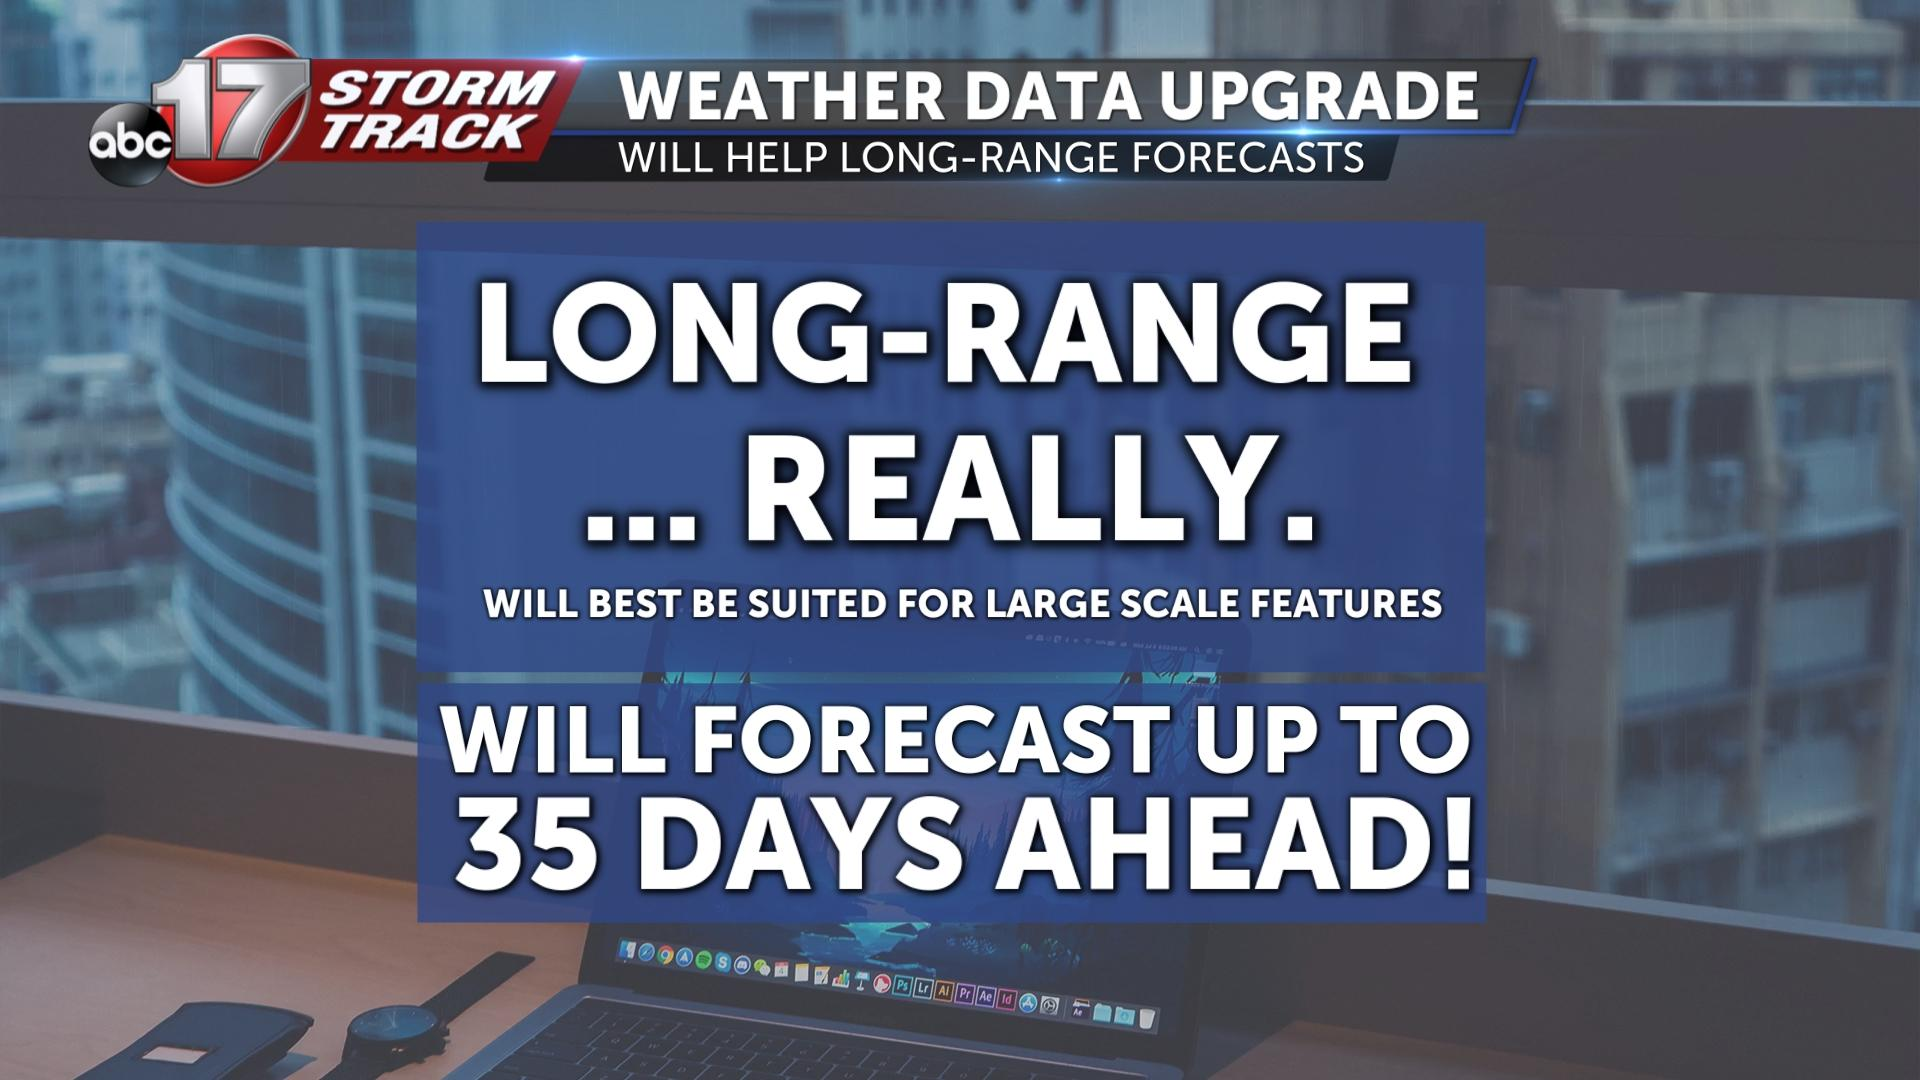 35 Day Forecasts Noaa Overhauls Long Range Forecasting System Abc17news #35 40 viewing 1 day ago. 35 day forecasts noaa overhauls long